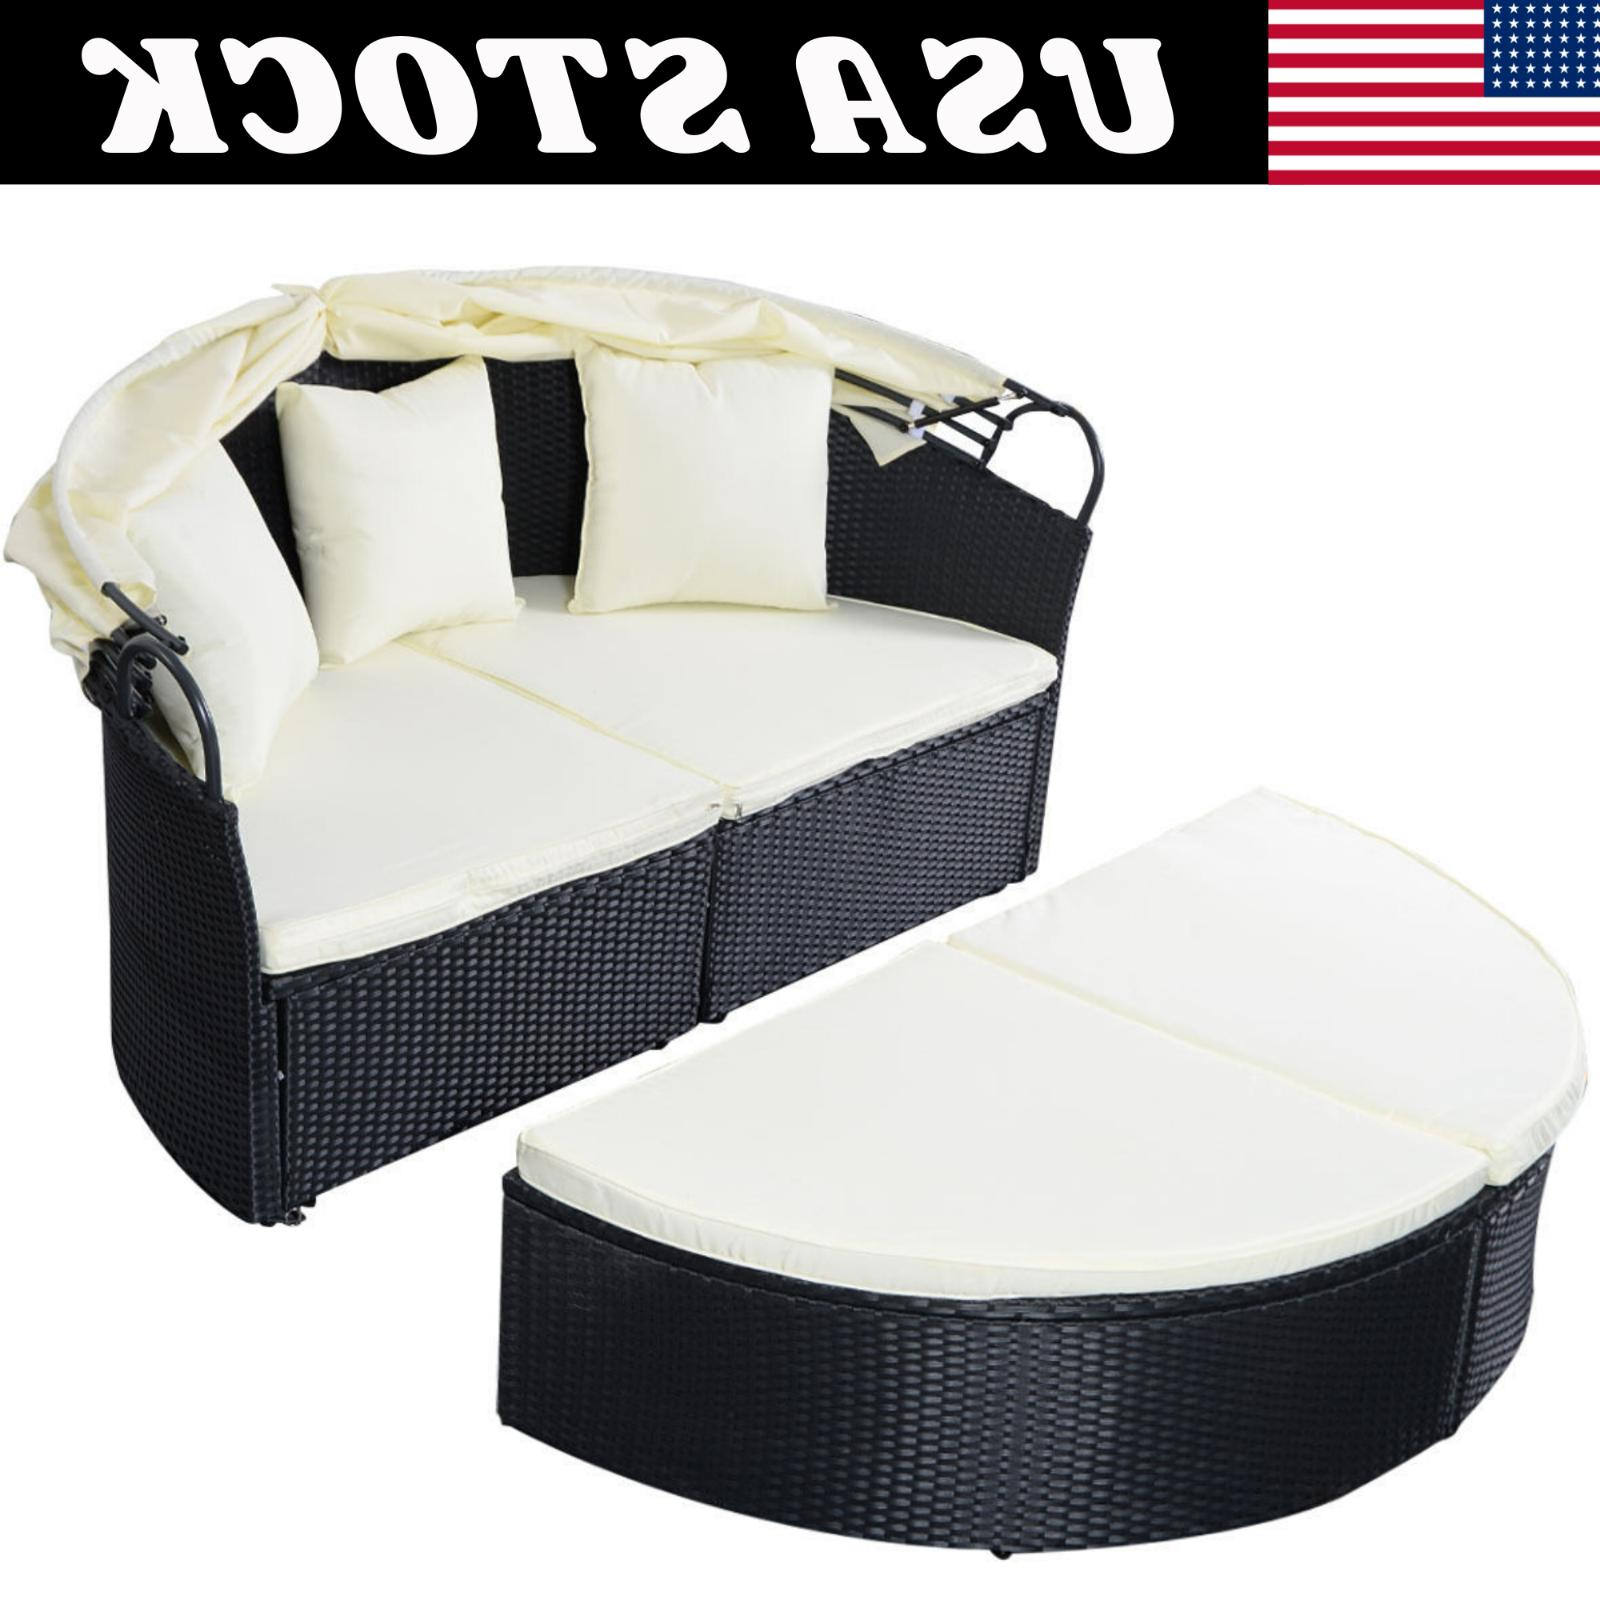 Outdoor Rattan Patio Furniture Round Retractable Daybed